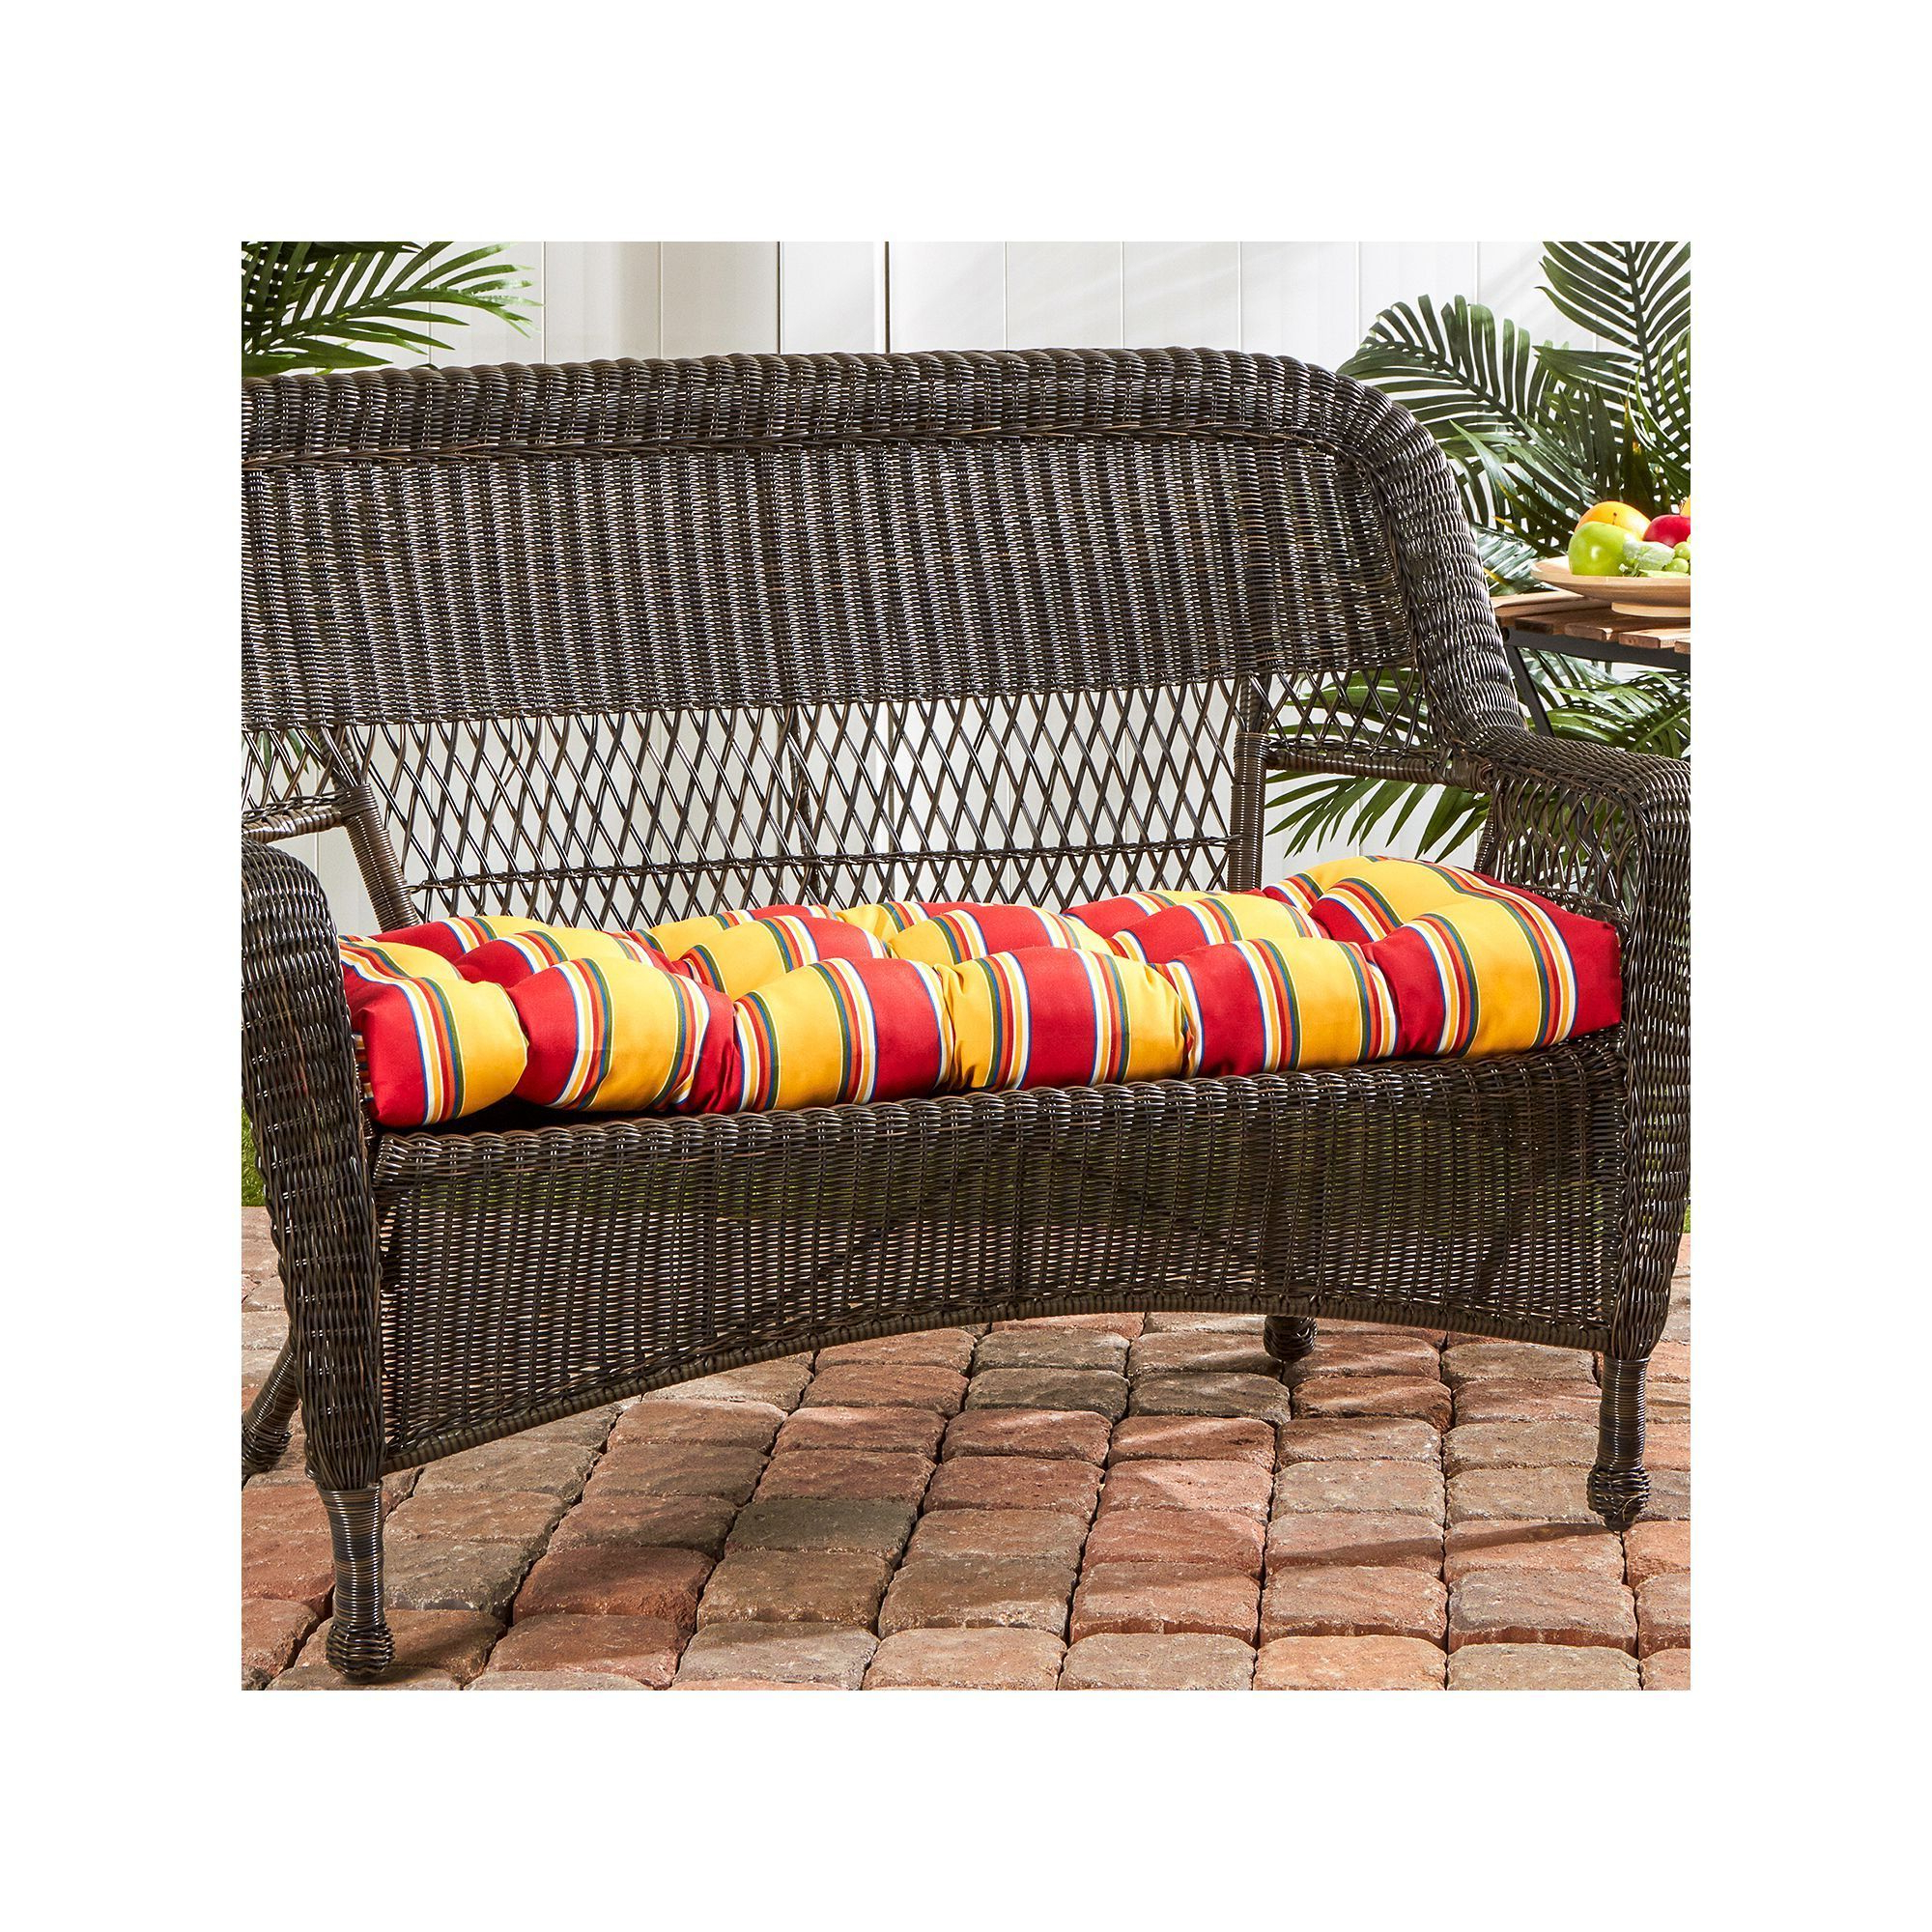 Greendale Home Fashions Outdoor Porch Swing Or Bench Cushion Inside Recent Karan Wicker Patio Loveseats (View 14 of 20)